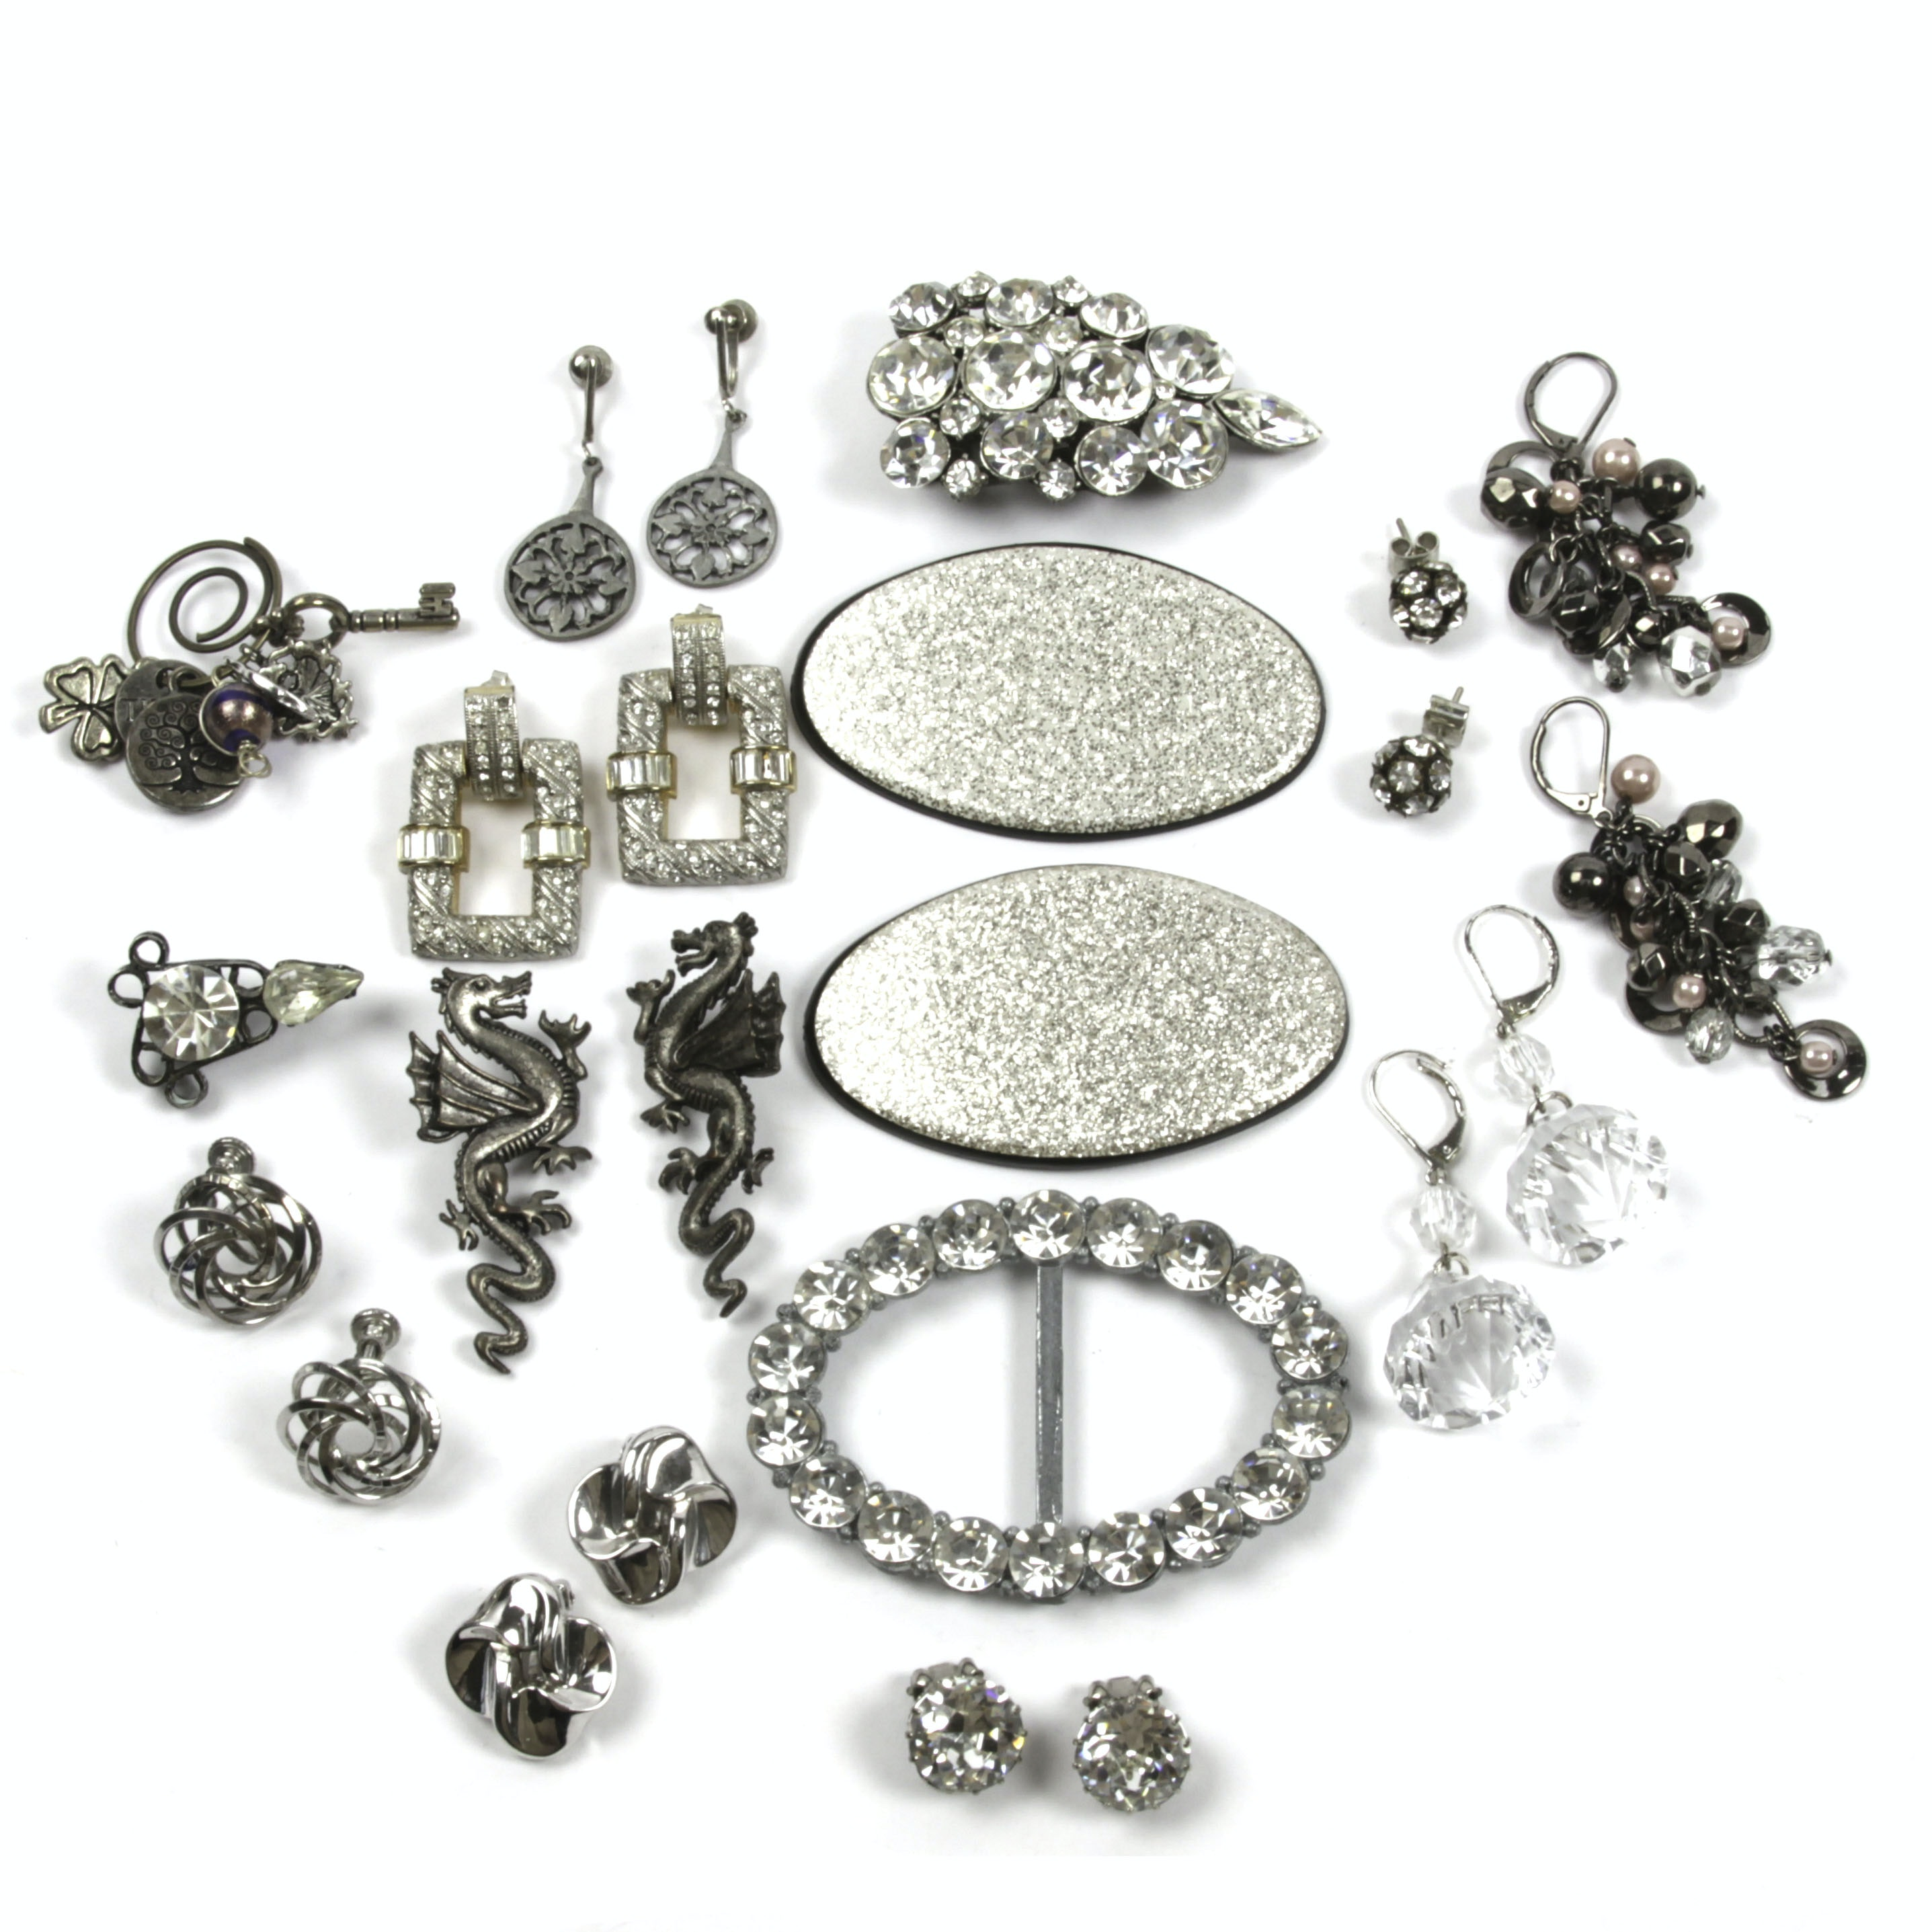 Eclectic Rhinestone and Silver Tone Costume Jewelry